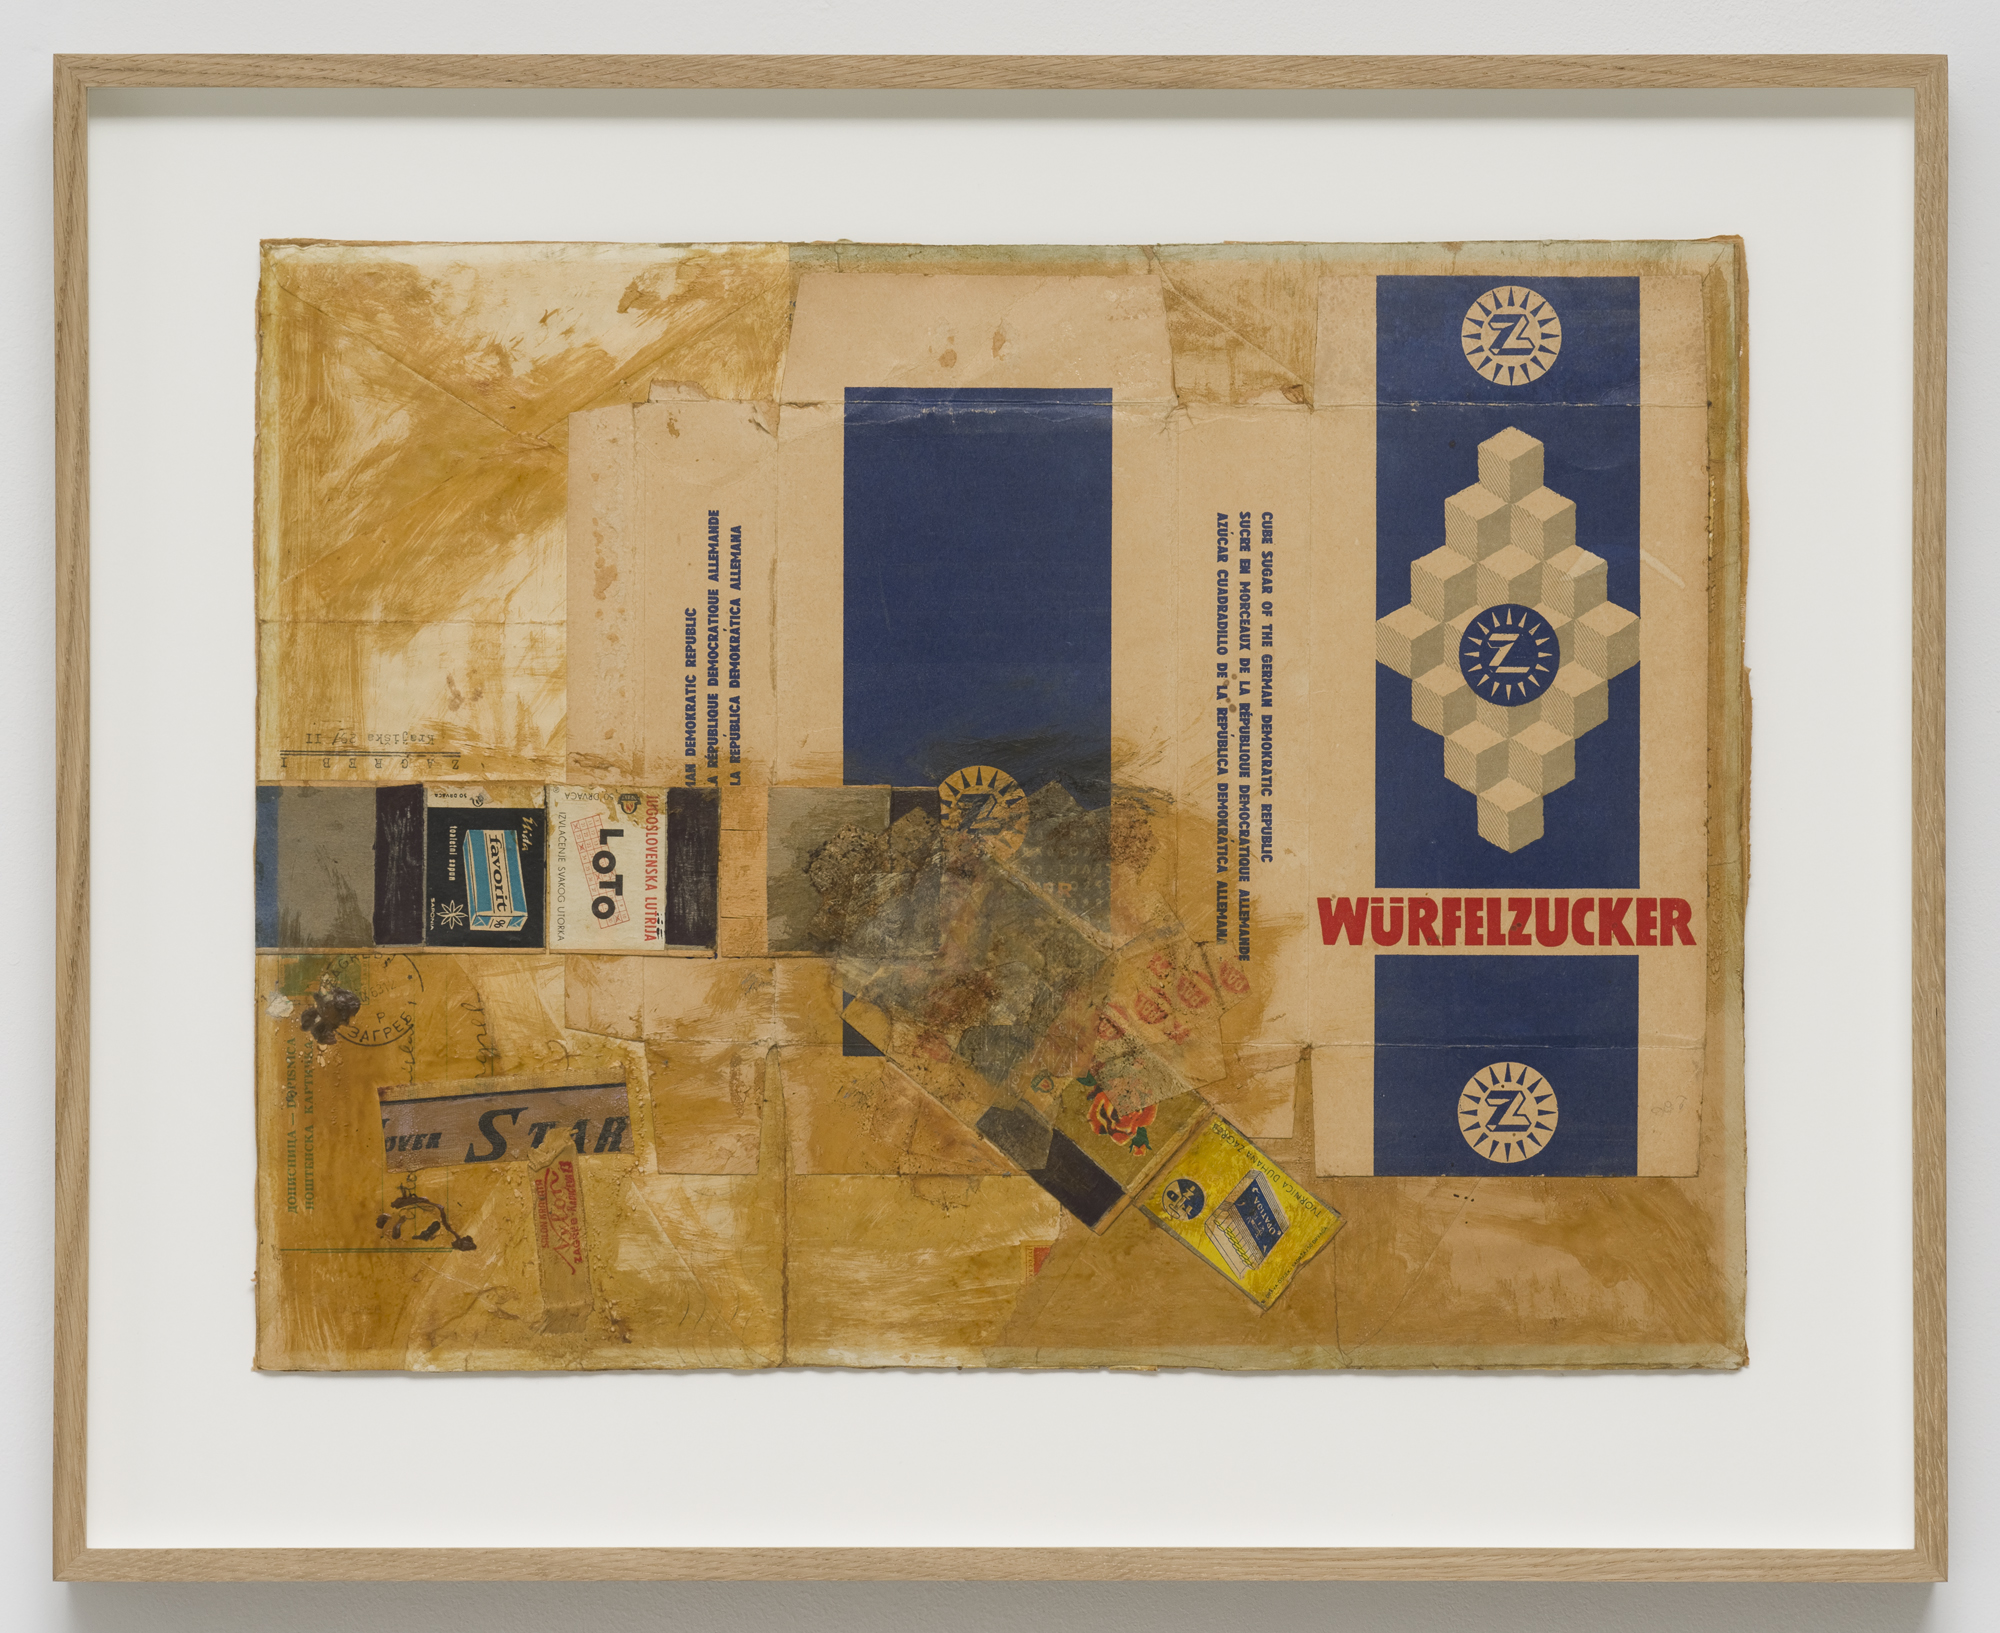 Noises 1, packaging material, paper, newspaper, flyers, envelopes, glue, cardboard, 46 x 57.5 cm, 1964